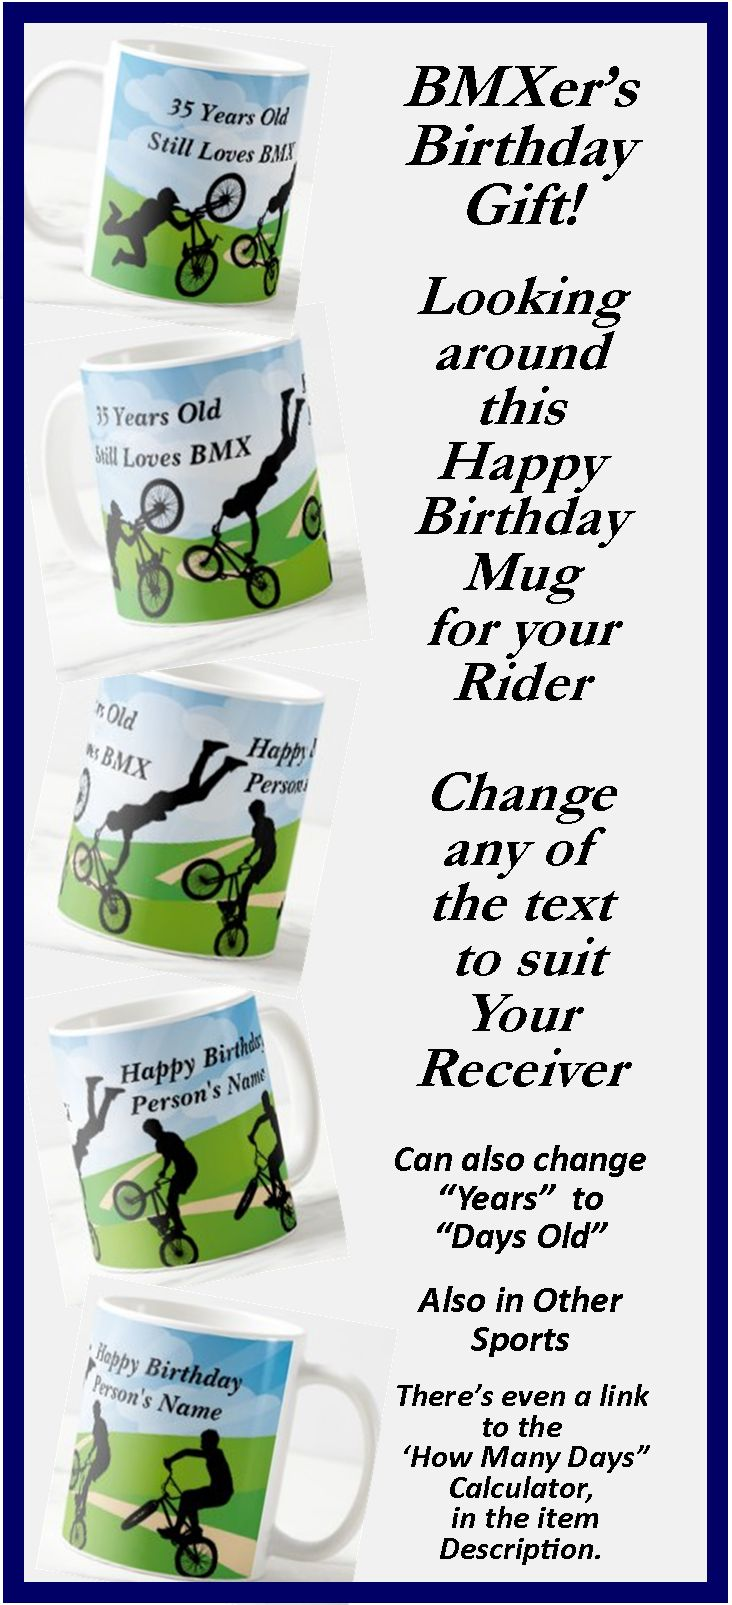 """Great Birthday Gift for the BMX Rider - - Change the Days or Years, - - - Change the Name to suit your Recipient. - - there's a """"How many Days"""" calculator link in the item description."""